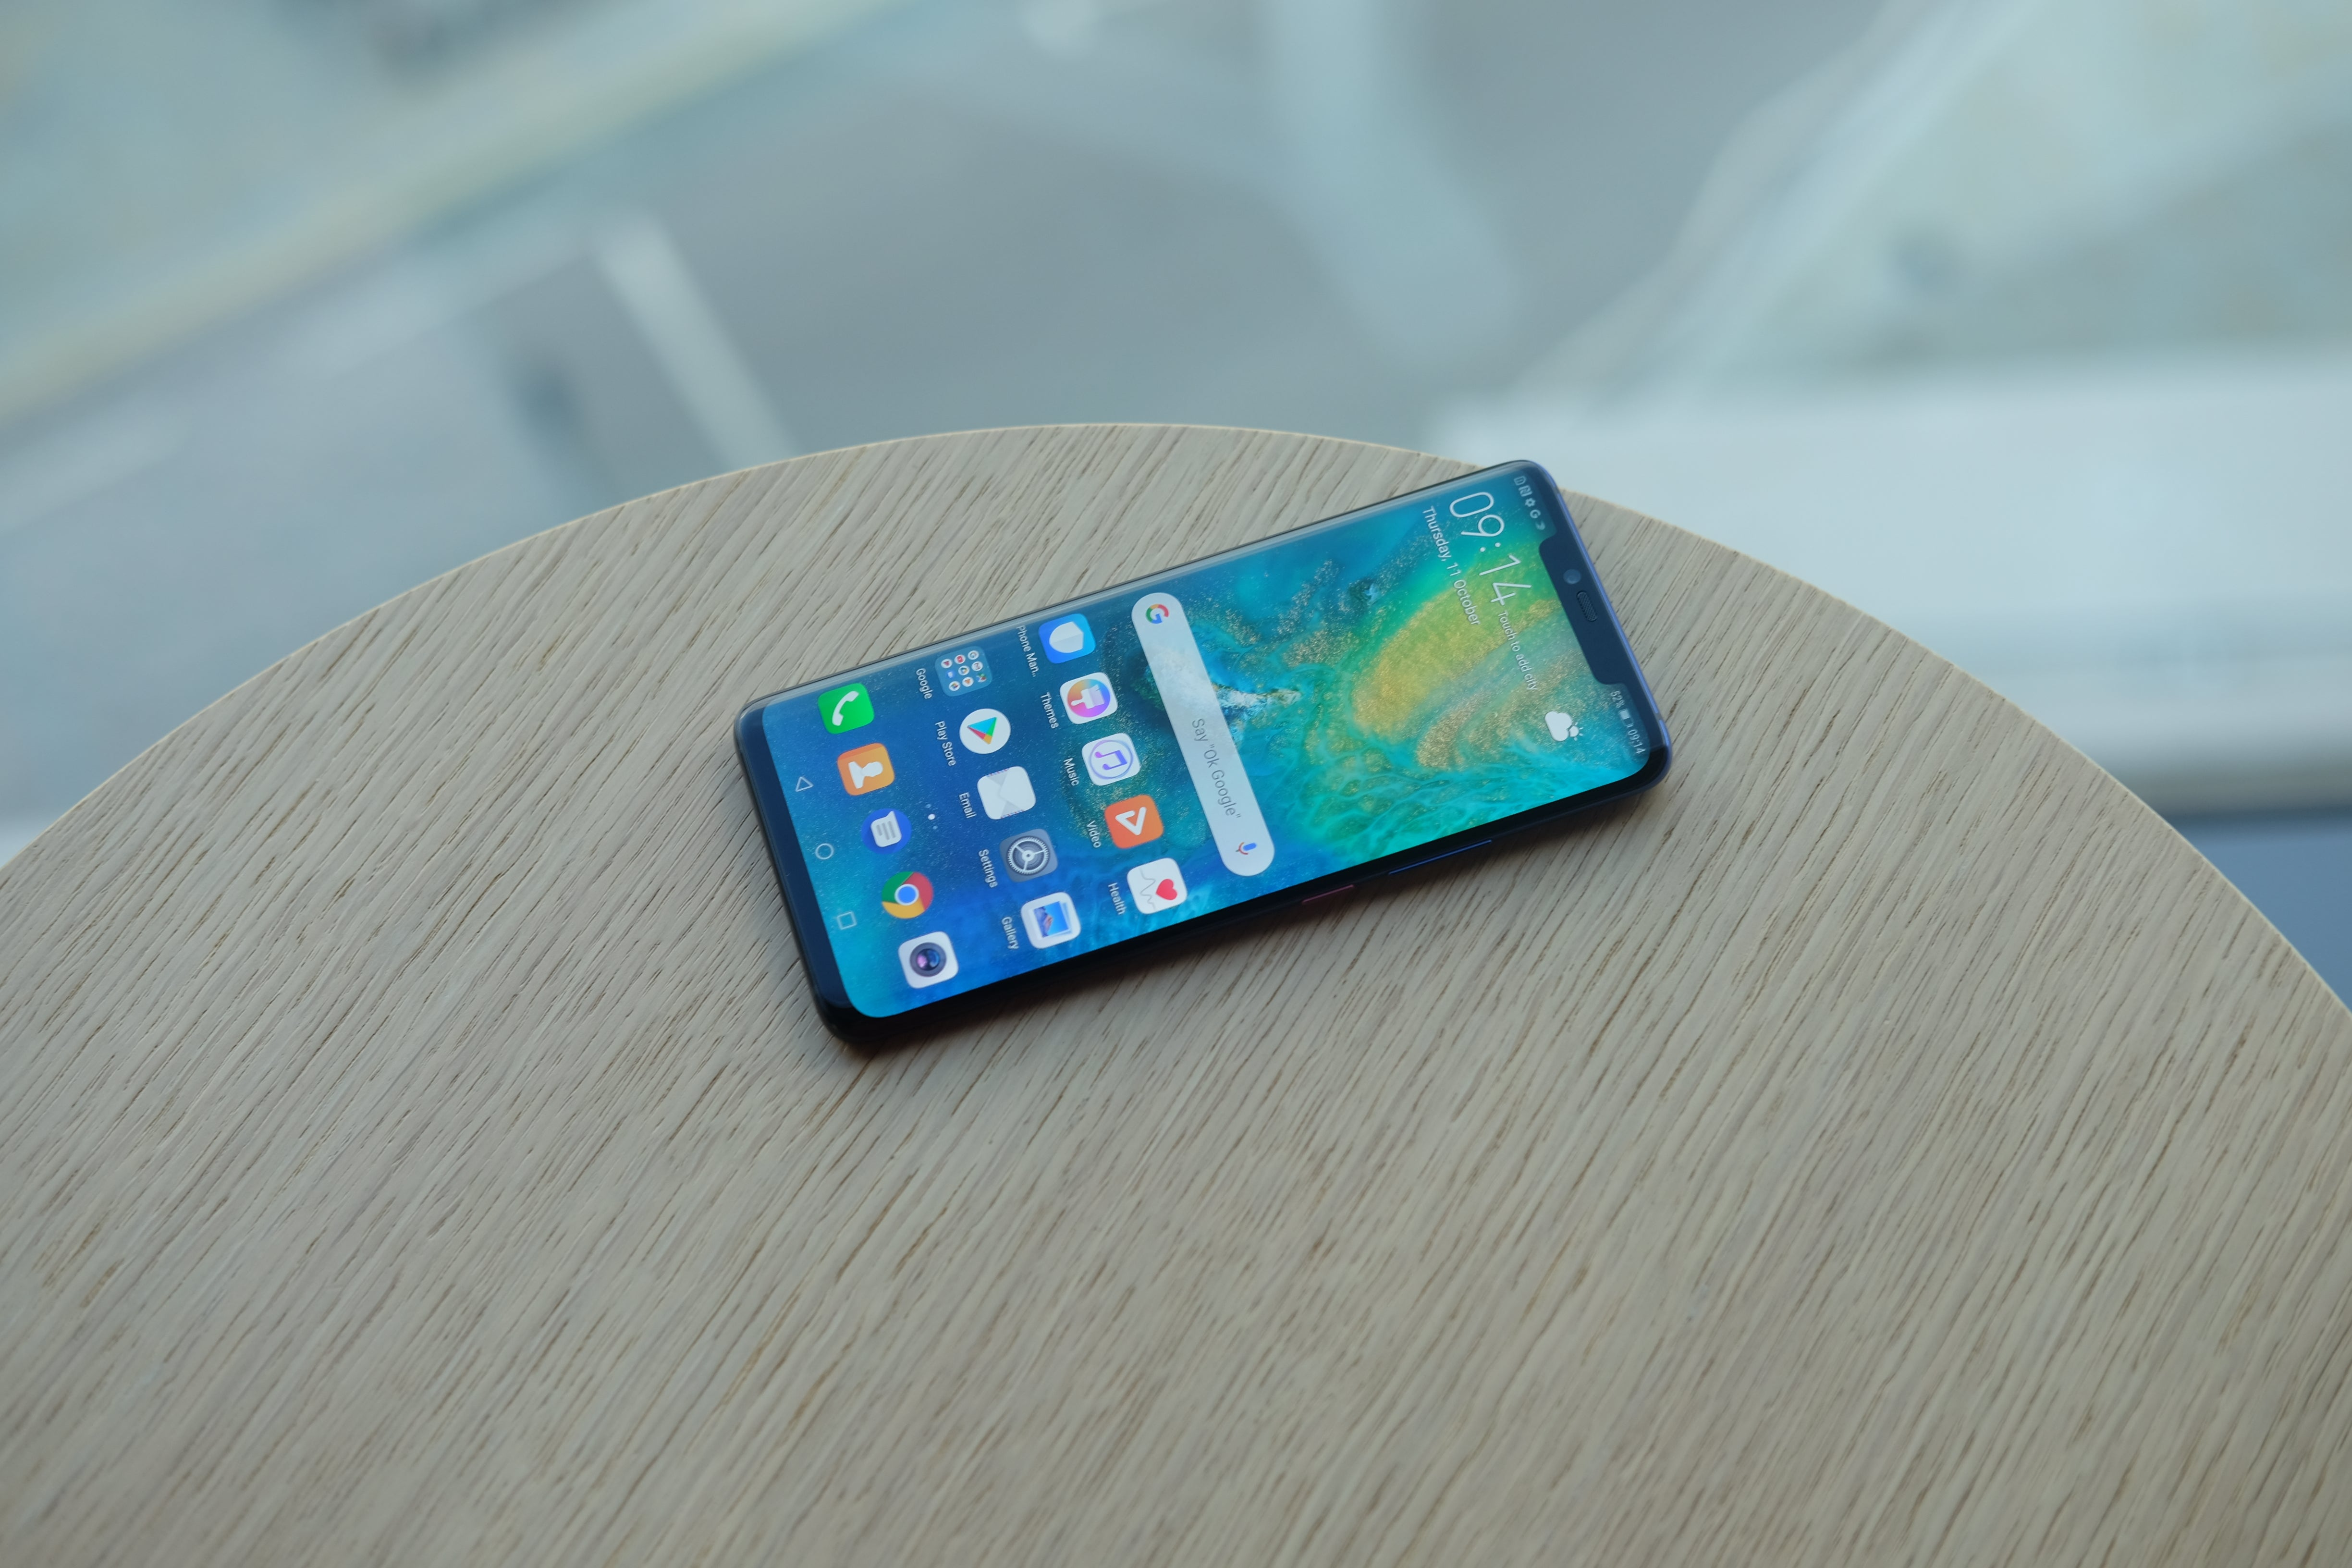 Huawei Mate 20 Pro users can still install Android Q − but hold off